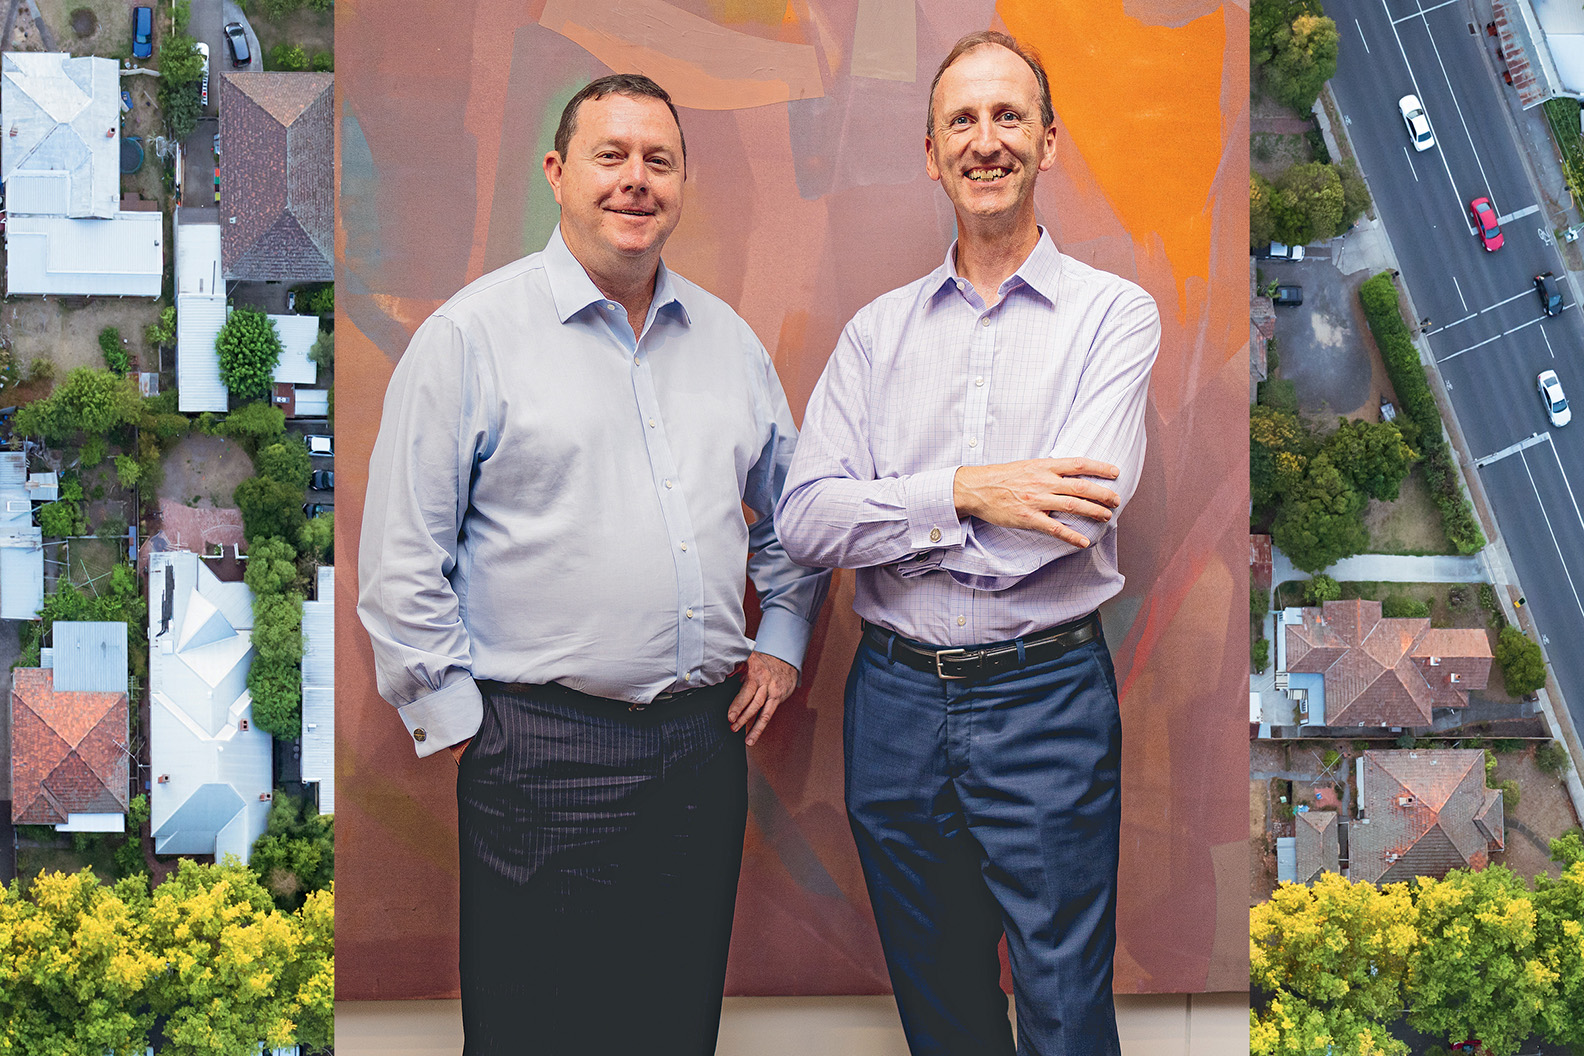 Tim Rabbitt, Managing Director and CEO & John Wise, Company Secretary and CFO of Acumentis Group